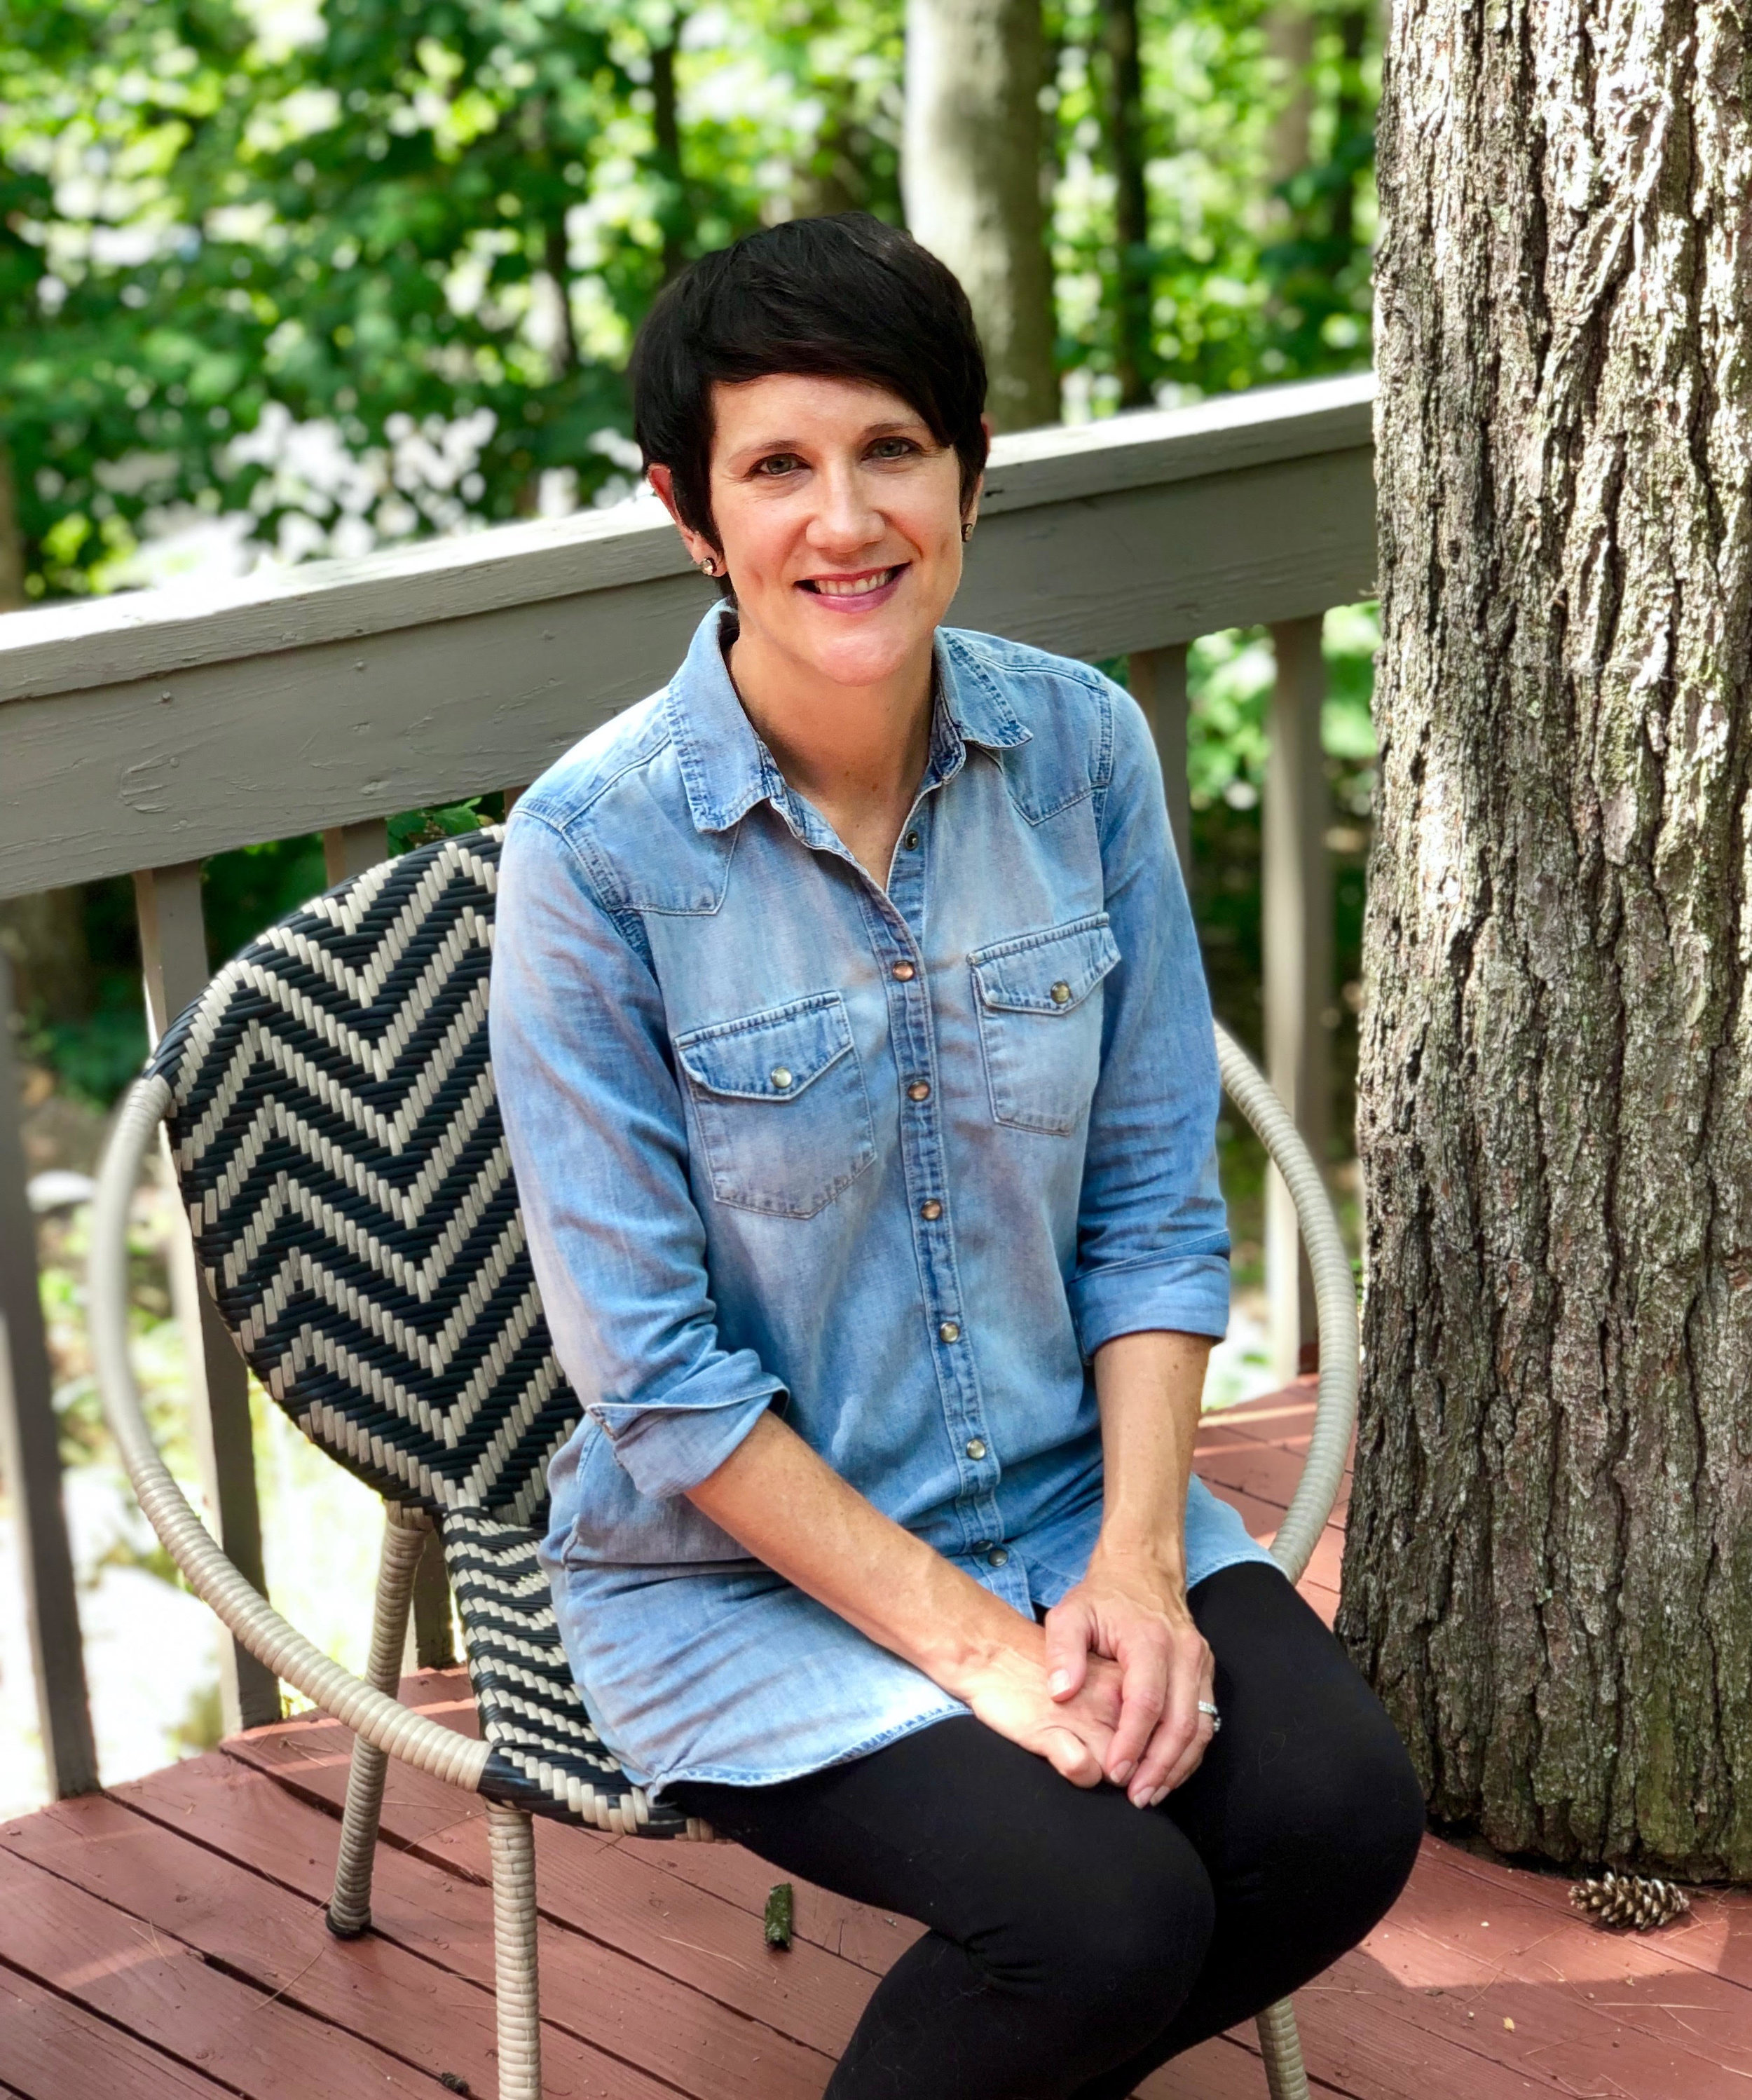 Jackie Keller, therapist and counselor in Traverse City. Helps clients overcome anxiety, trauma, depression, parenting issues and stress with CBT, mindfulness and EMDR